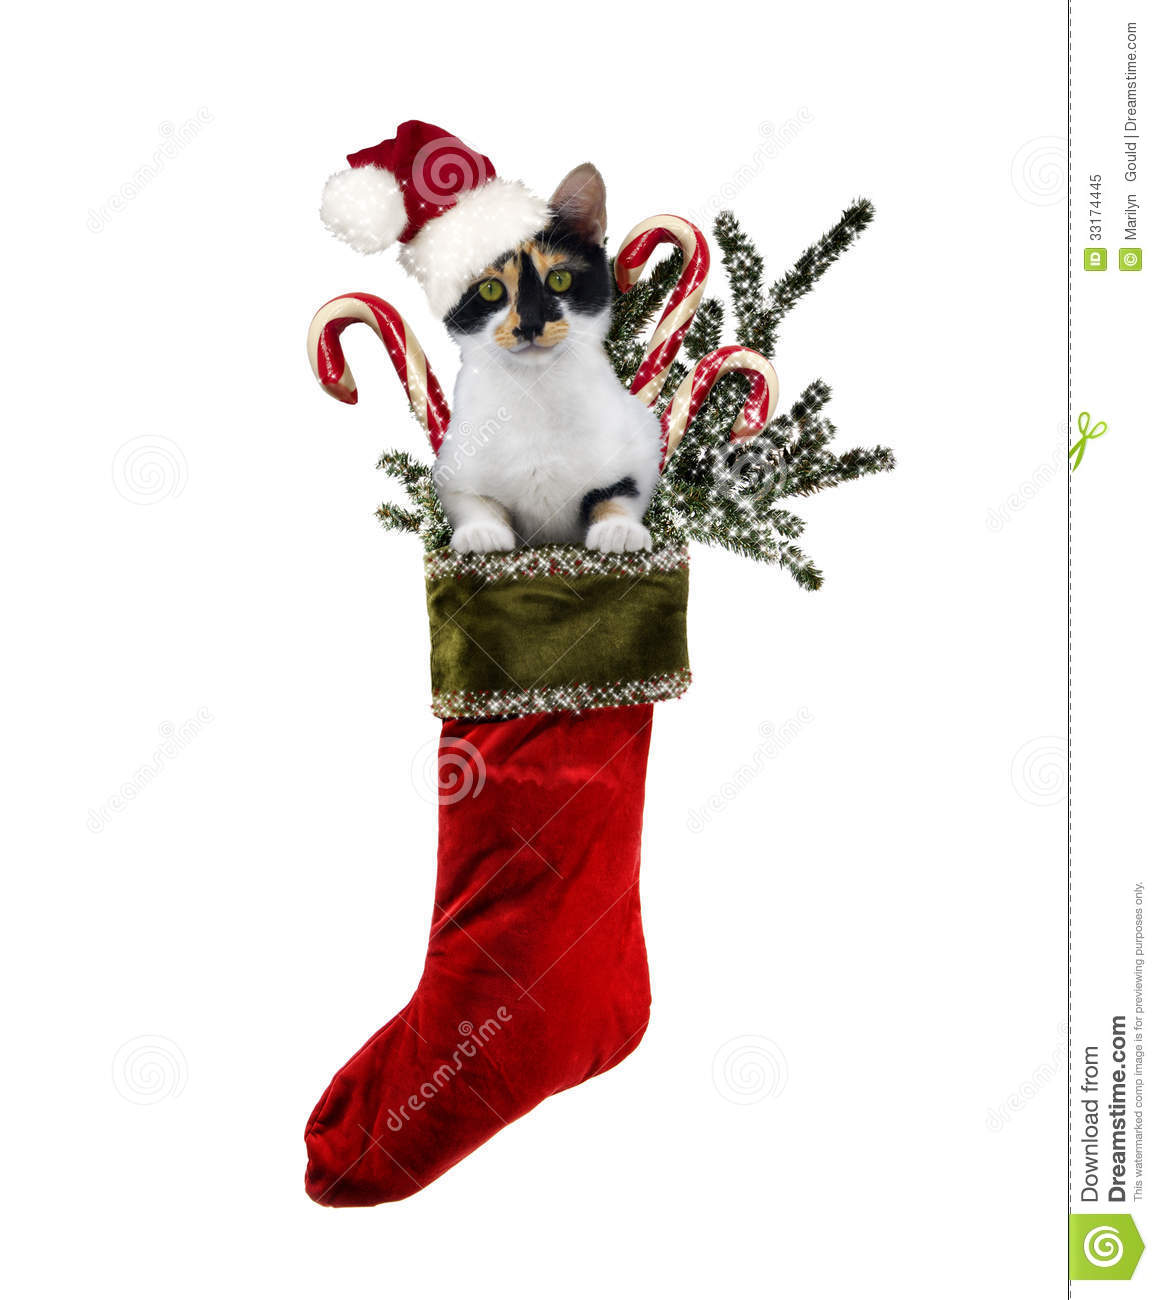 ... Christmas stocking stuffed with candy canes and Christmas greenery on